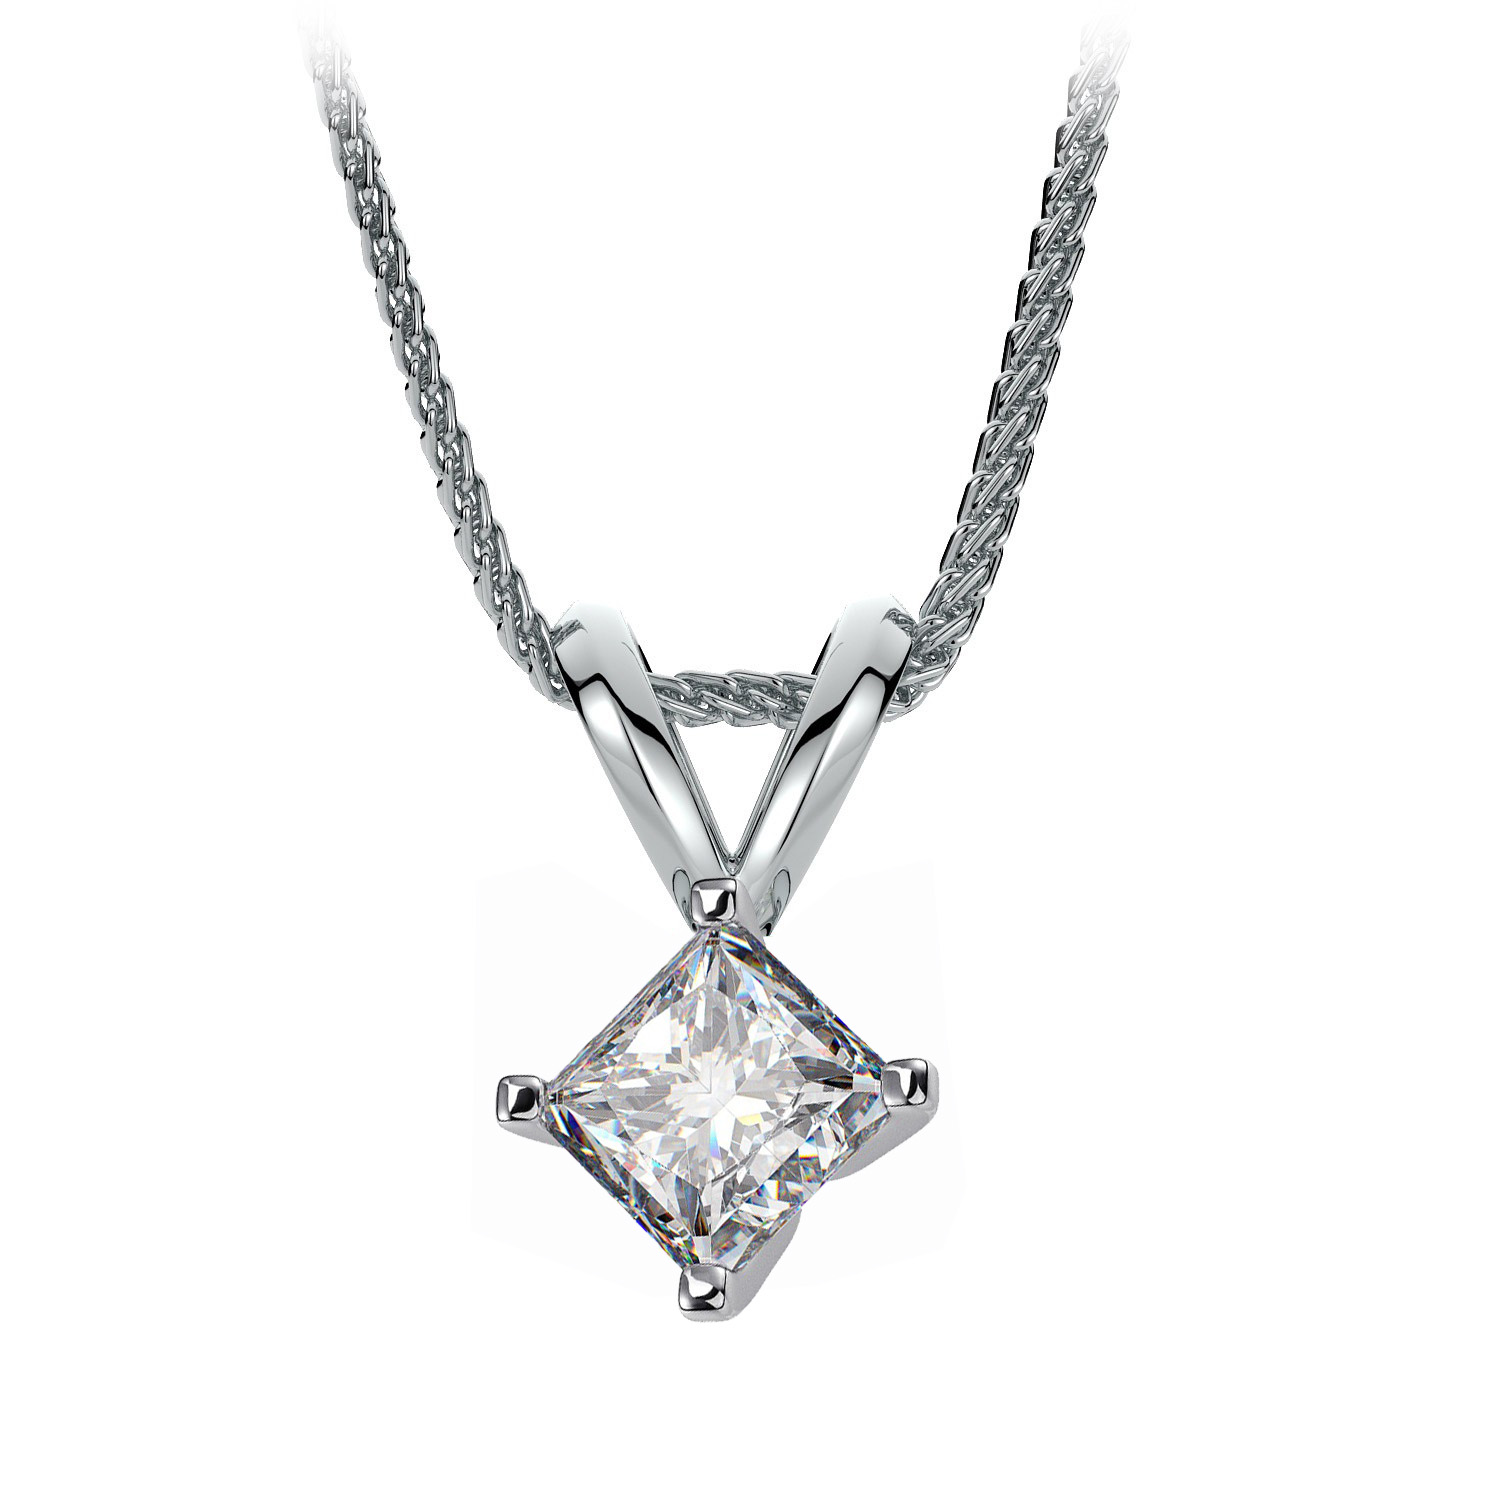 100 carat princess cut solitaire diamond pendant 14k white gold gia 100 carat princess cut solitaire diamond pendant 14k white gold gia certified wantmydiamond aloadofball Image collections